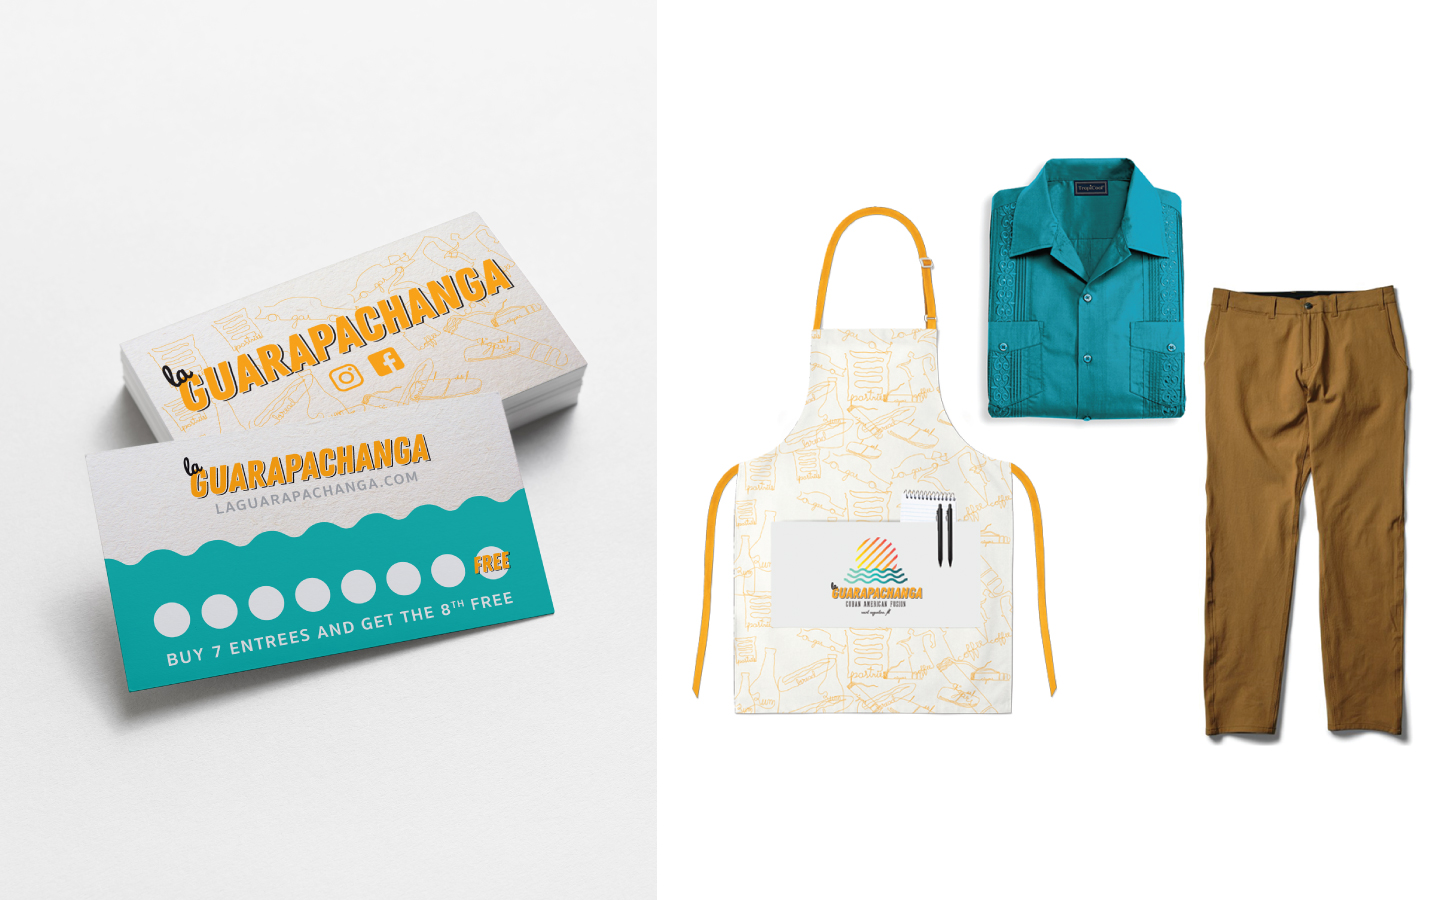 Left: Multipurposebusiness card and punch card Right: Unisex server uniforms consisting of apron, trousers, and guayaberas, a traditional Cuban wear